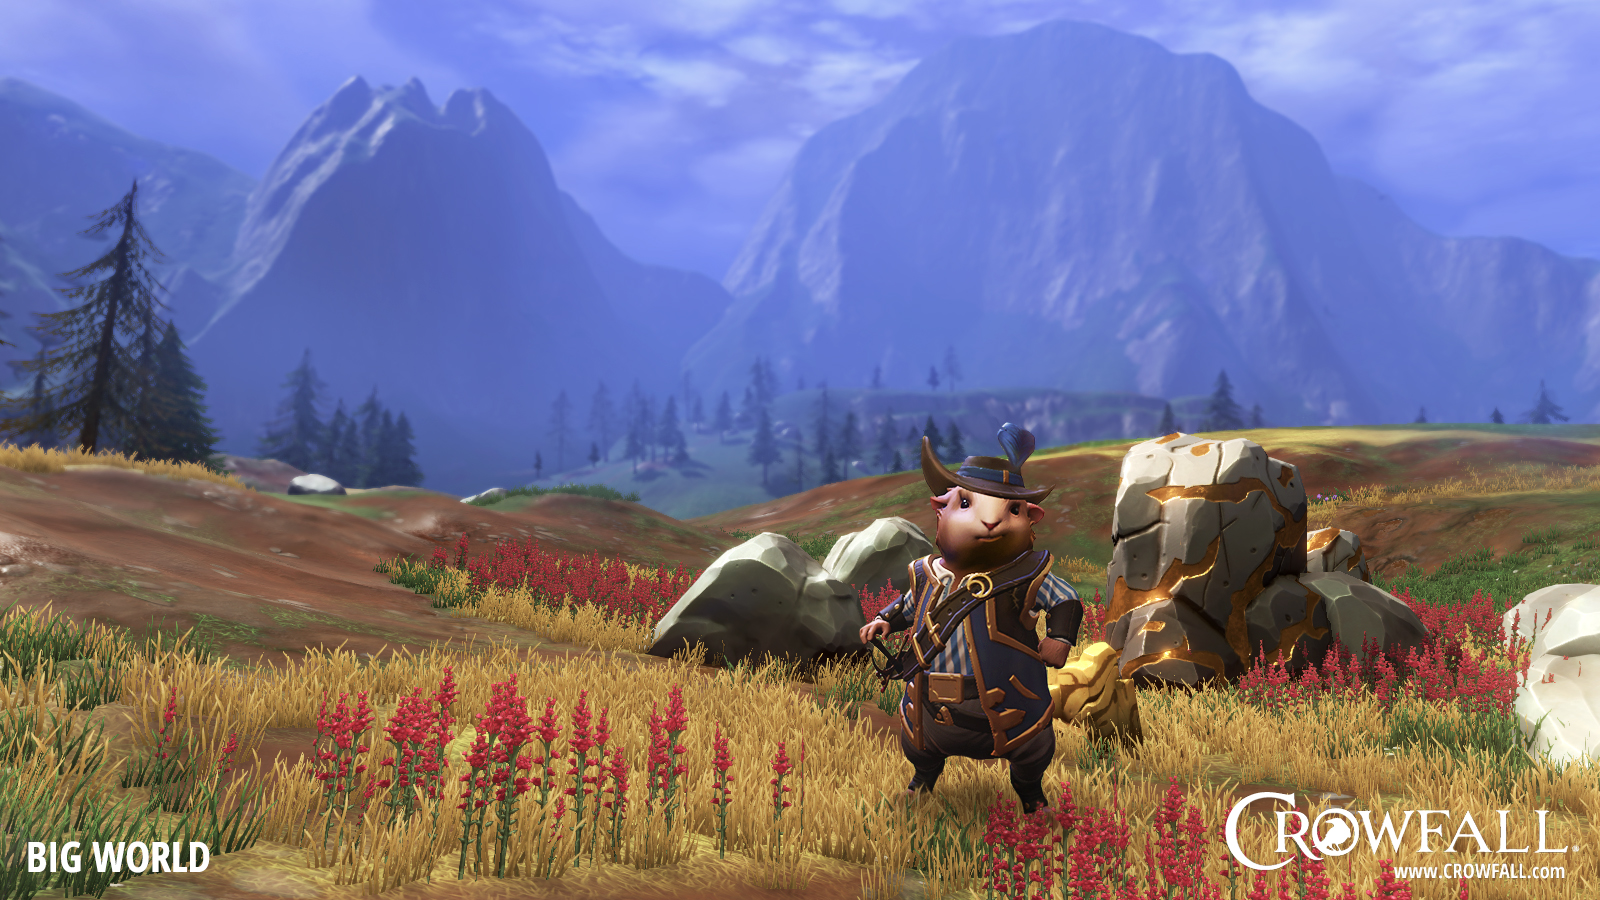 Crowfall achieves 50,000 Kickstarter supporters